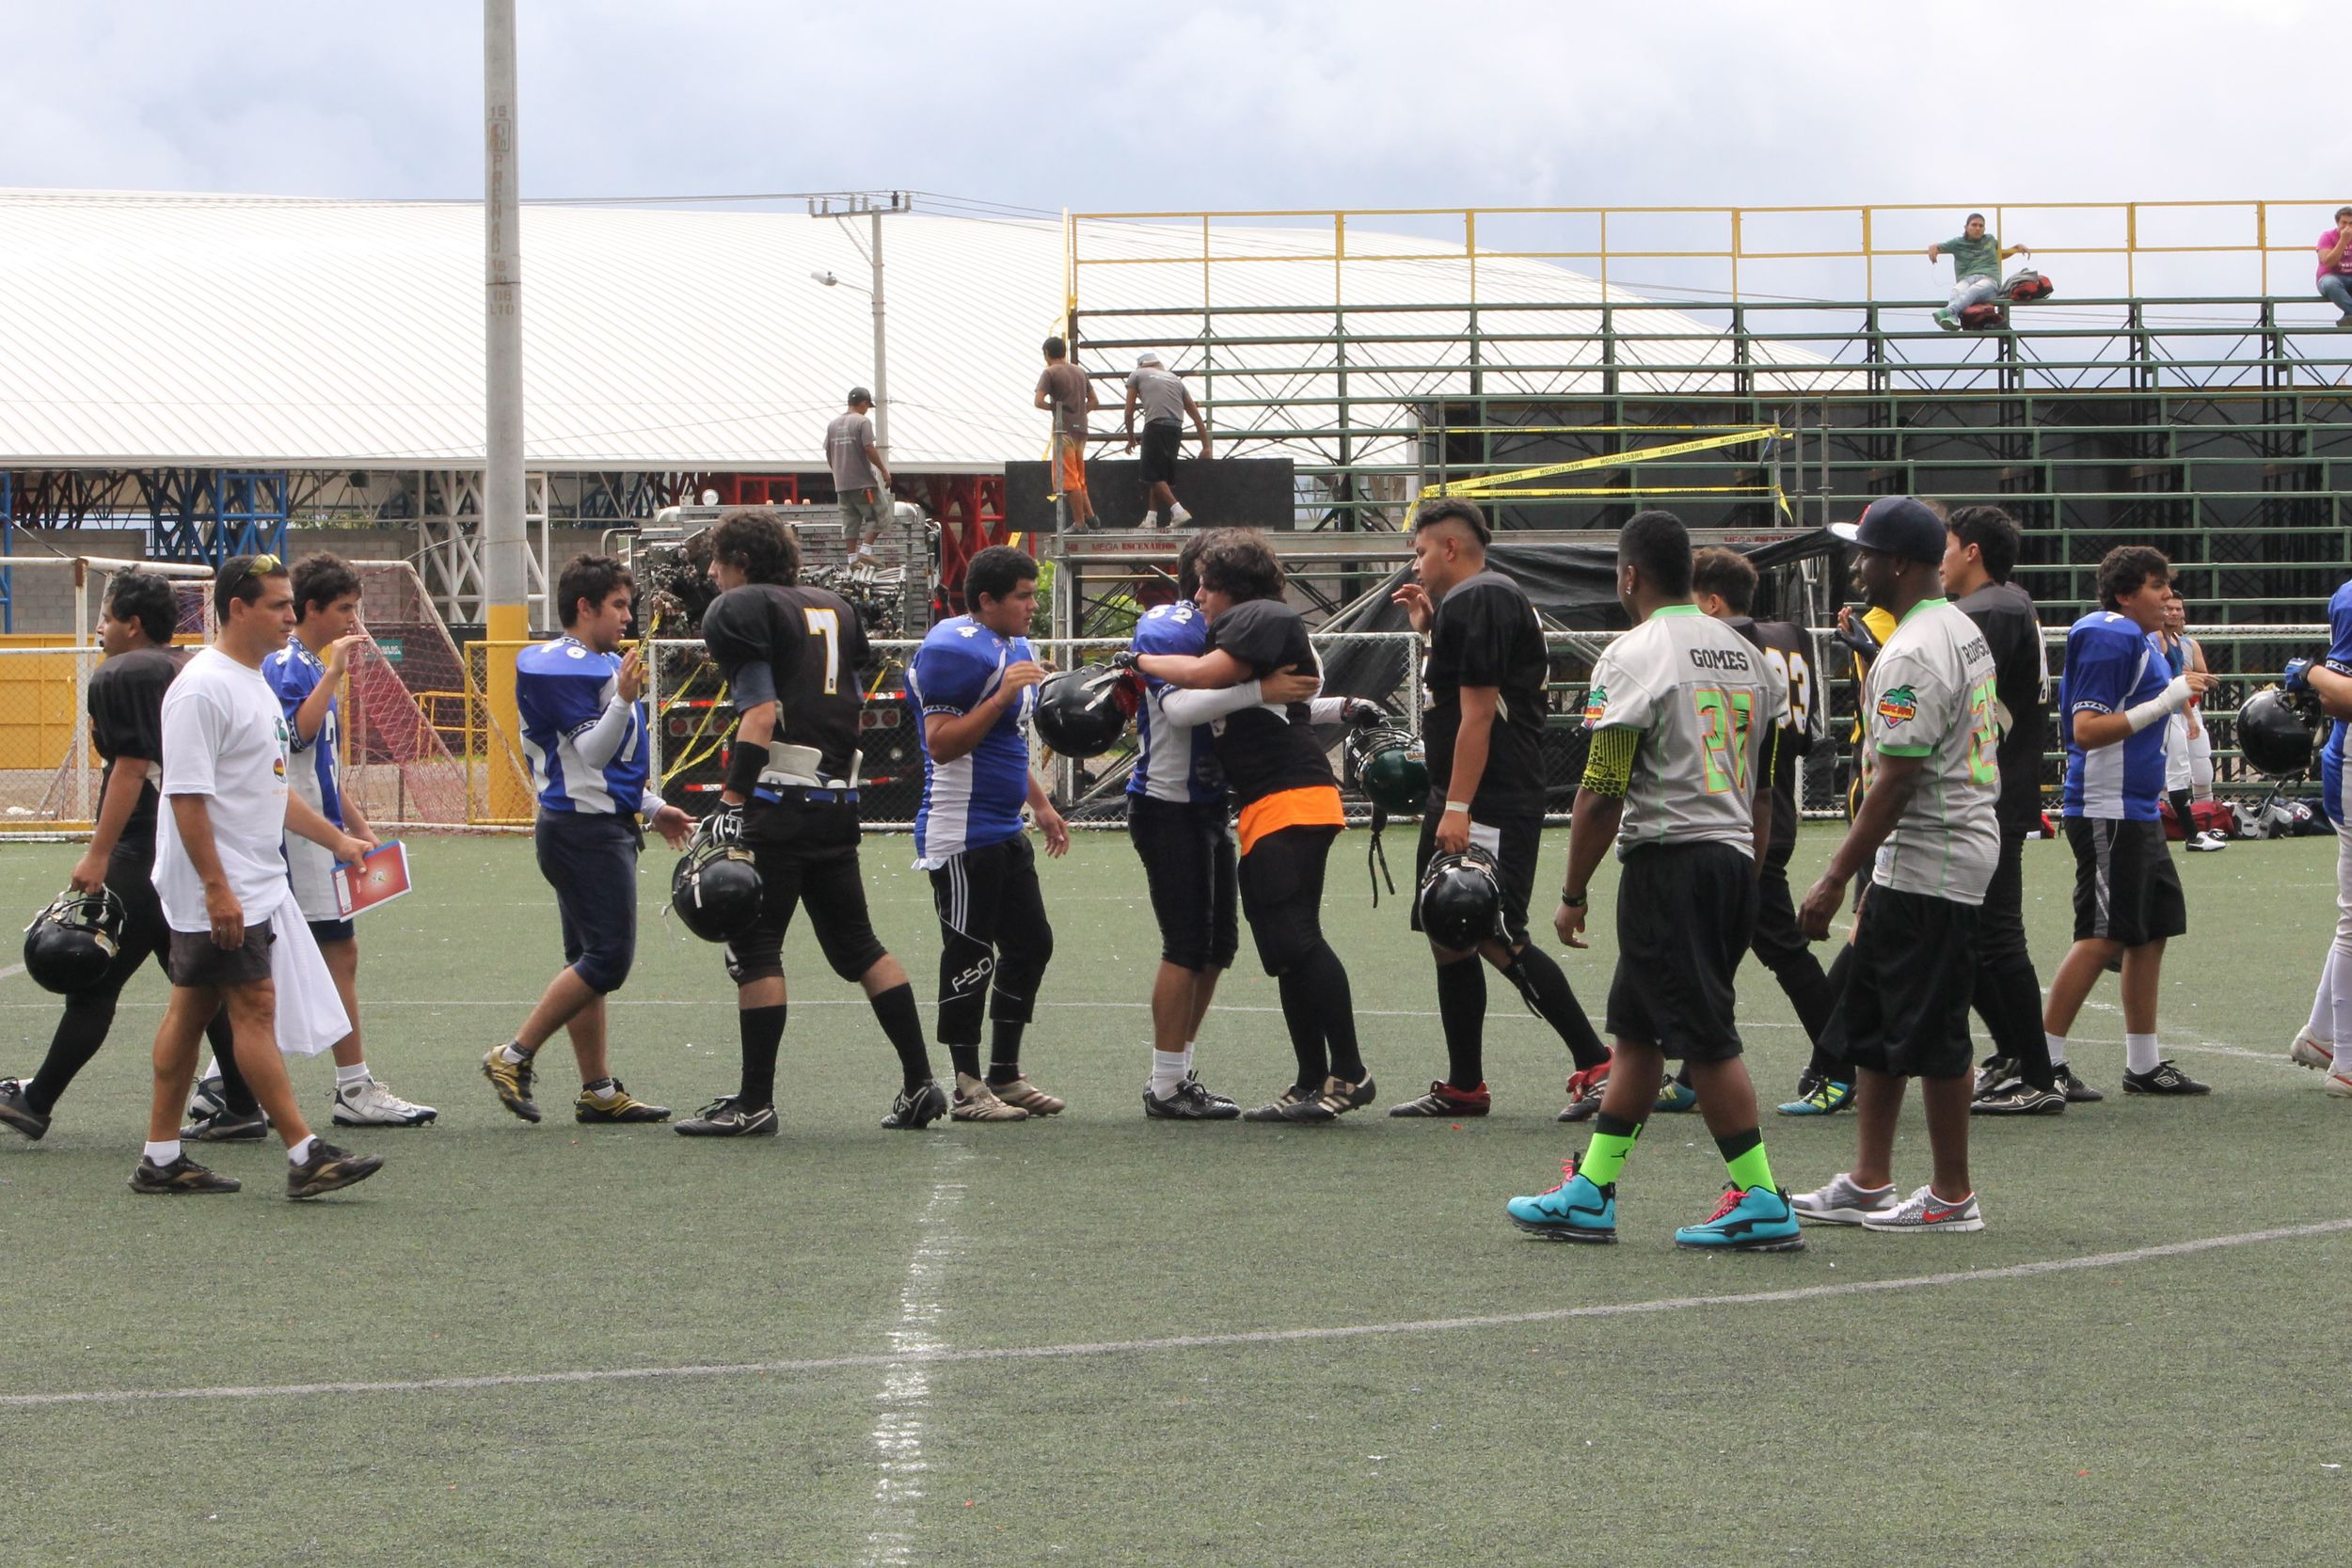 The Dragons 27 - The Blue Hawks 21